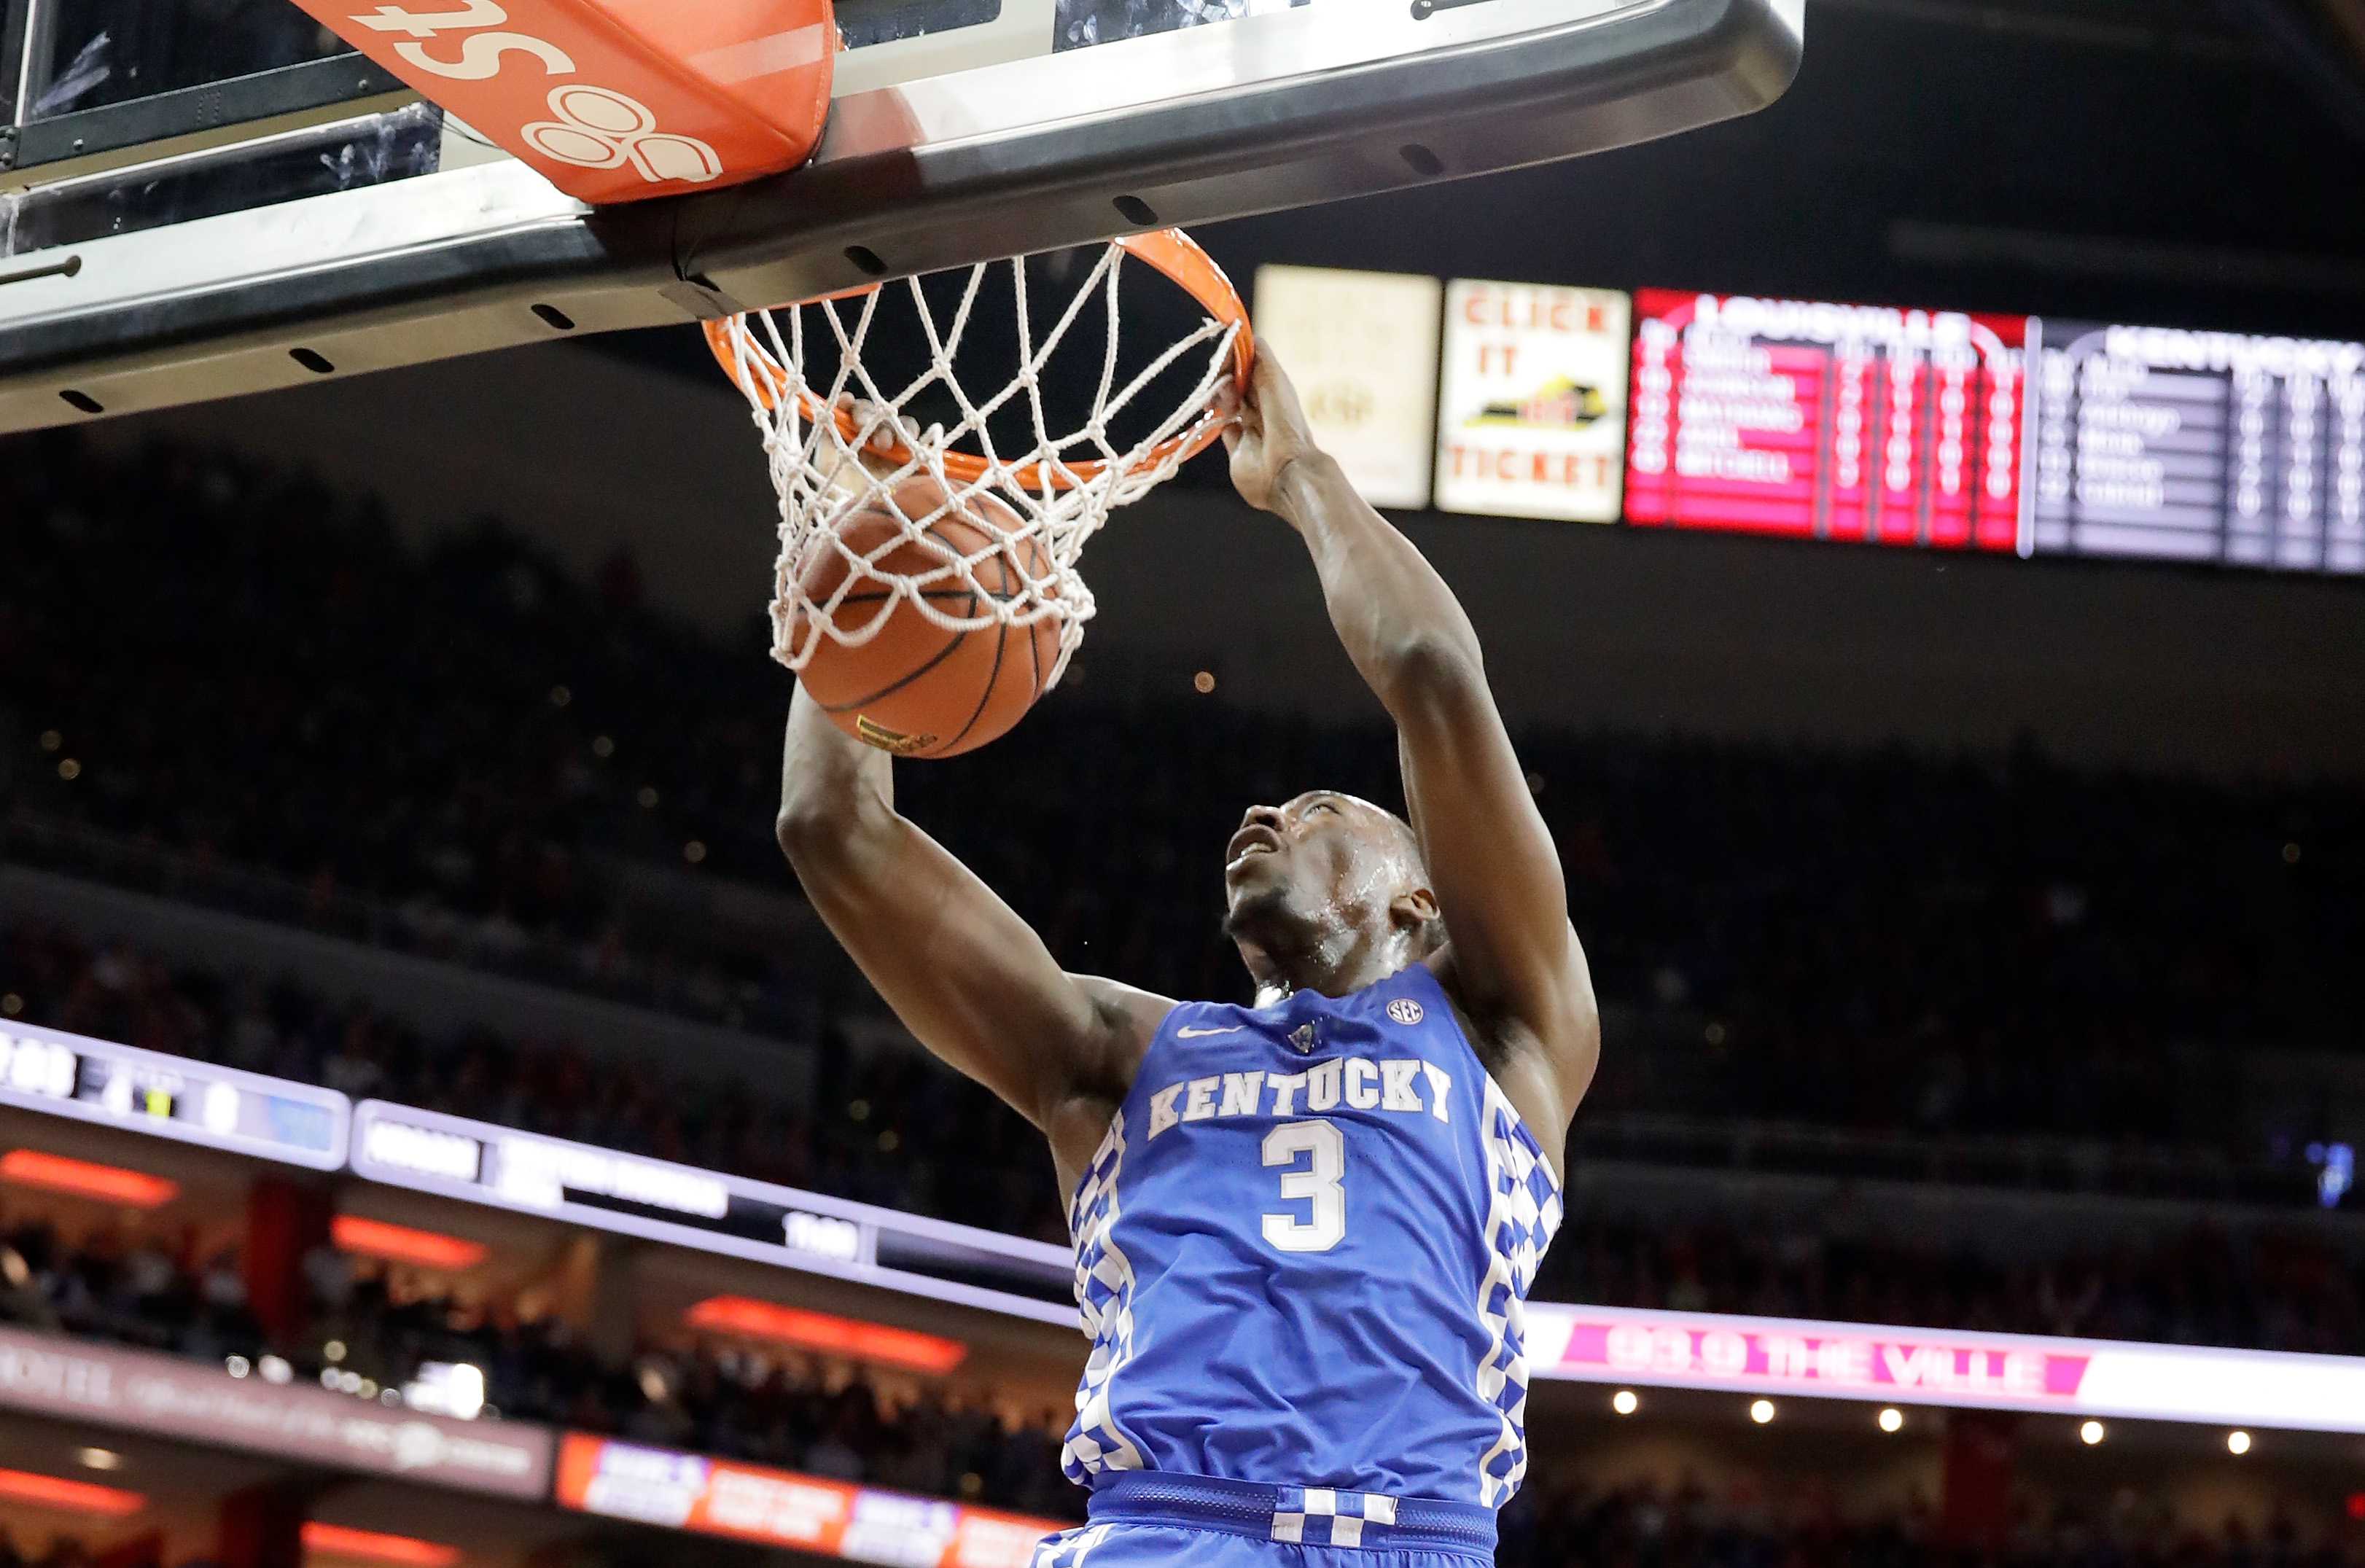 LOUISVILLE, KY - DECEMBER 21: Bam Adebayo #3 of the Kentucky Wildcats dunks the ball during the game against the Louisville Cardinals at KFC YUM! Center on December 21, 2016 in Louisville, Kentucky. (Photo by Andy Lyons/Getty Images)